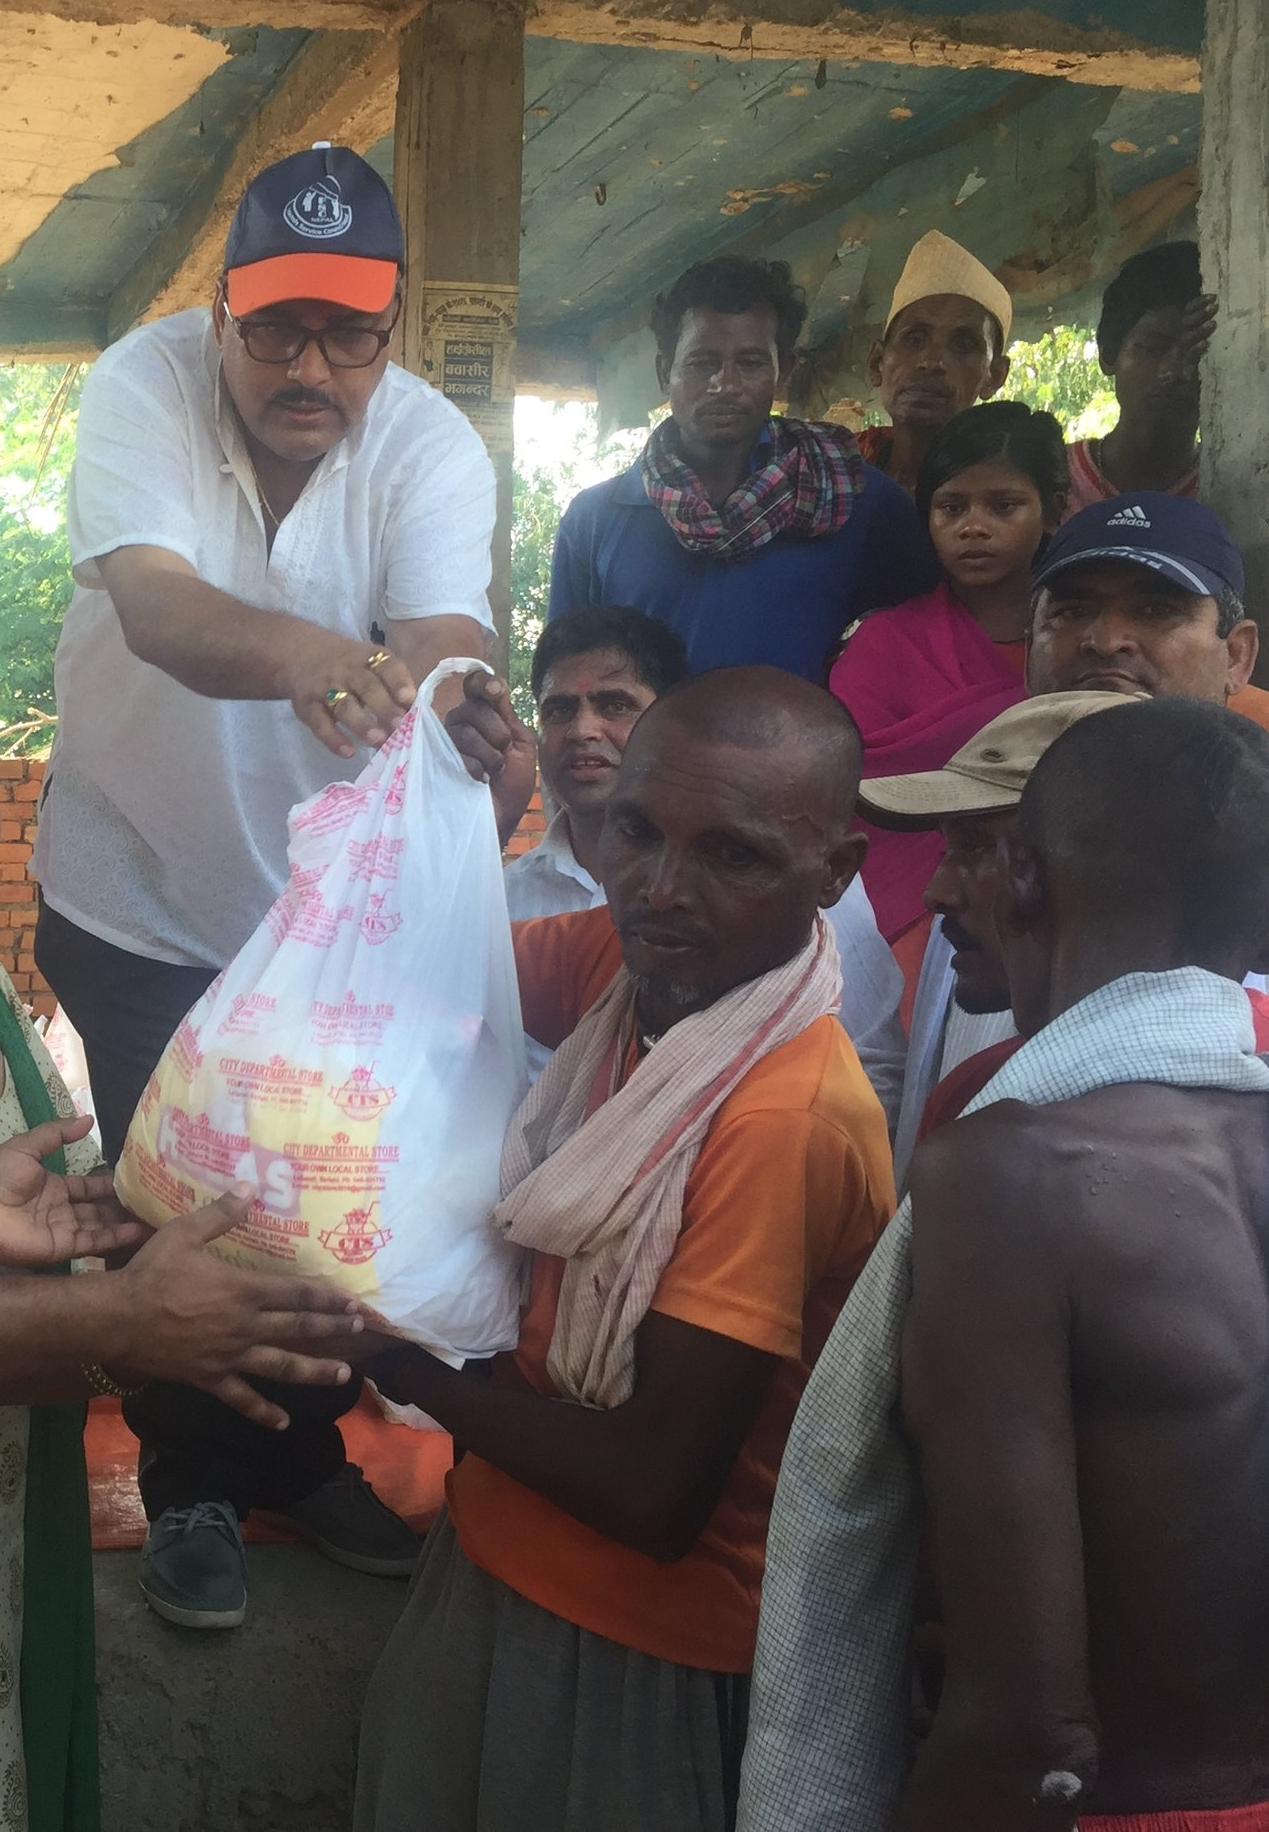 Relief parcels distributed among flood-affected communities